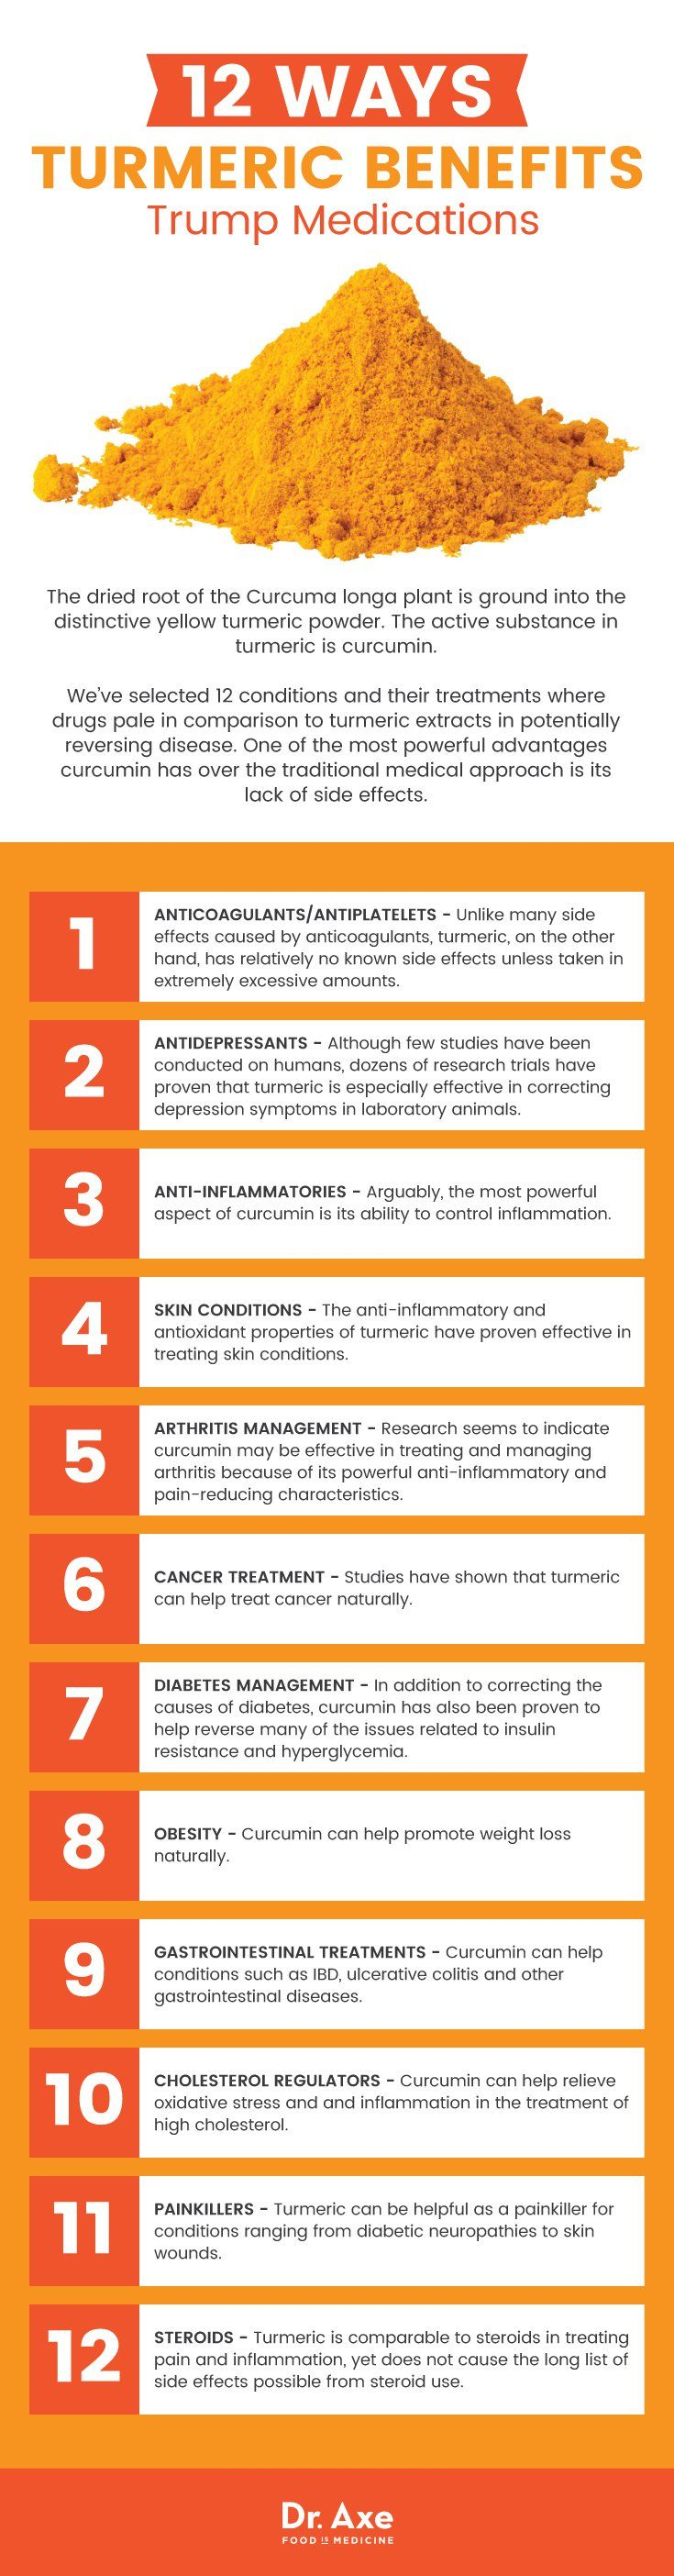 12 turmeric benefits - Dr. Axe